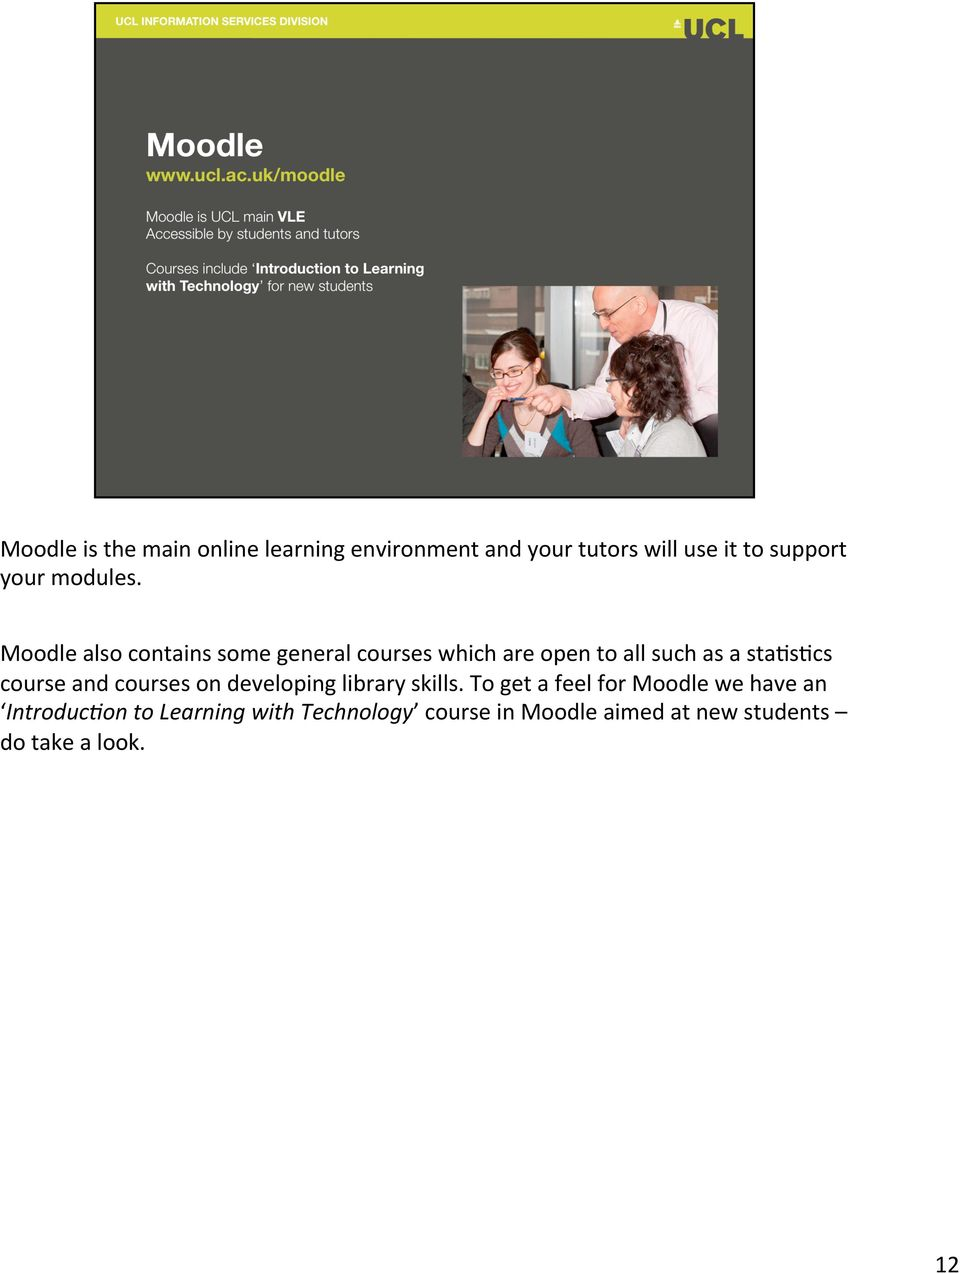 Moodle also contains some general courses which are open to all such as a sta,s,cs course